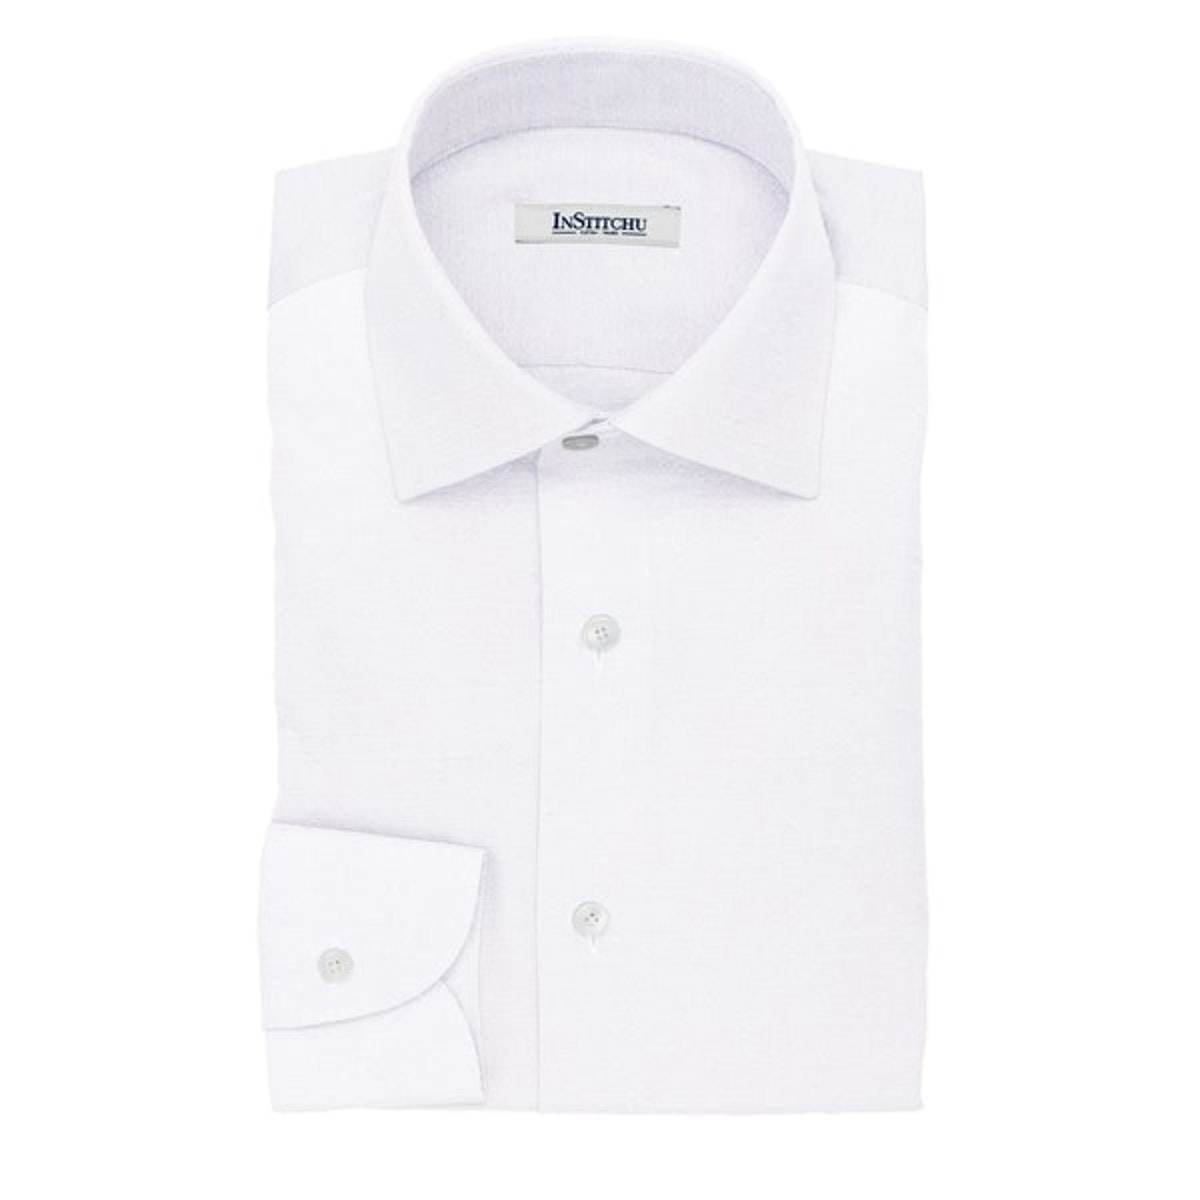 InStitchu Collection The Draper White Cotton Oxford Popover Shirt